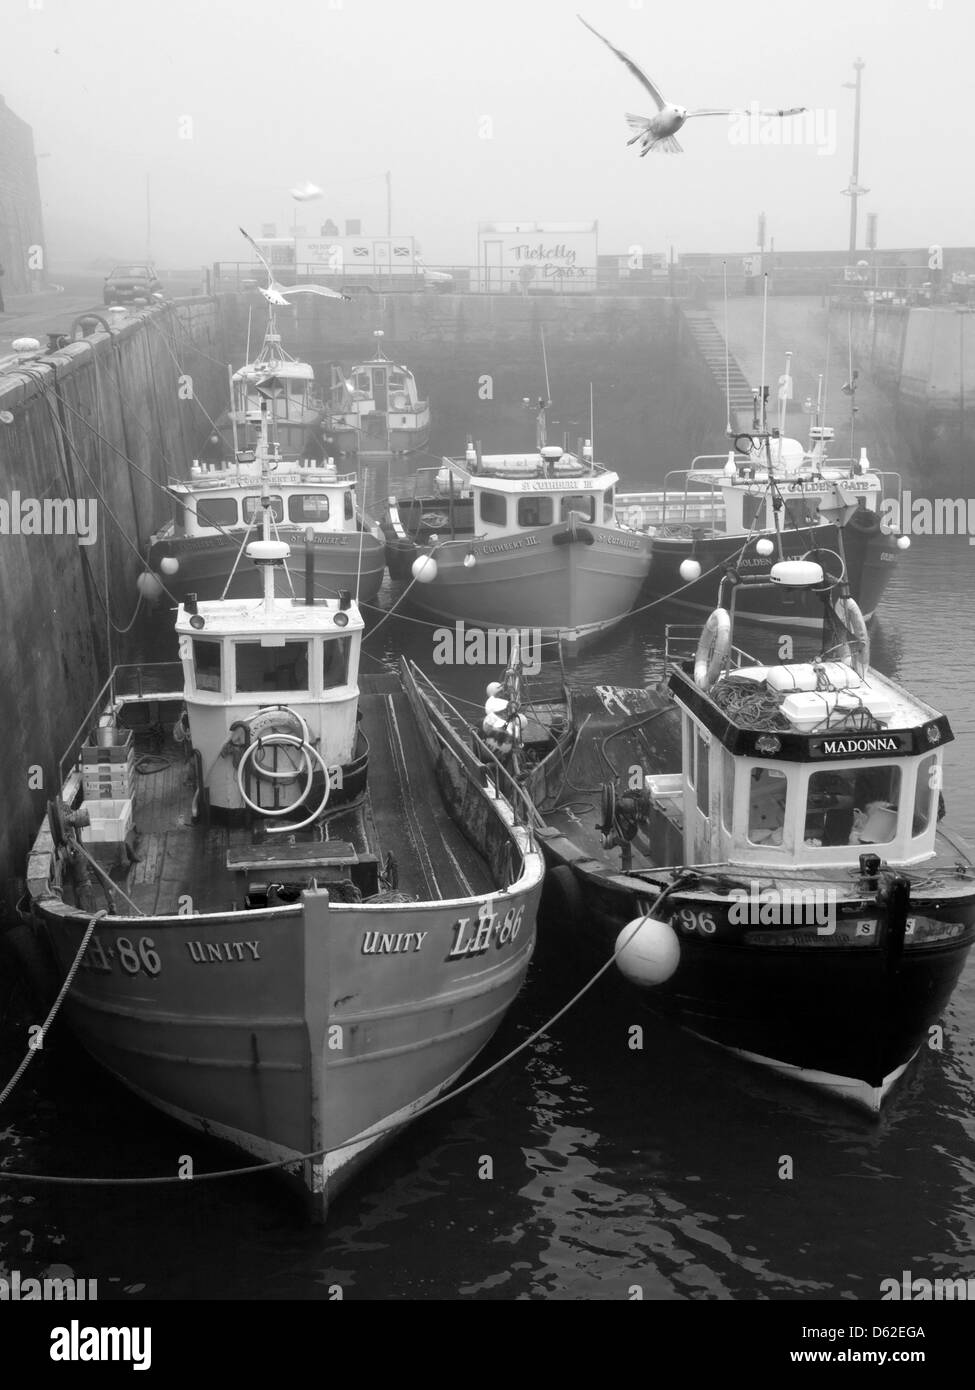 Fishing boats in the harbour on a grey misty day in Seahouses, Northumberland England UK - Stock Image